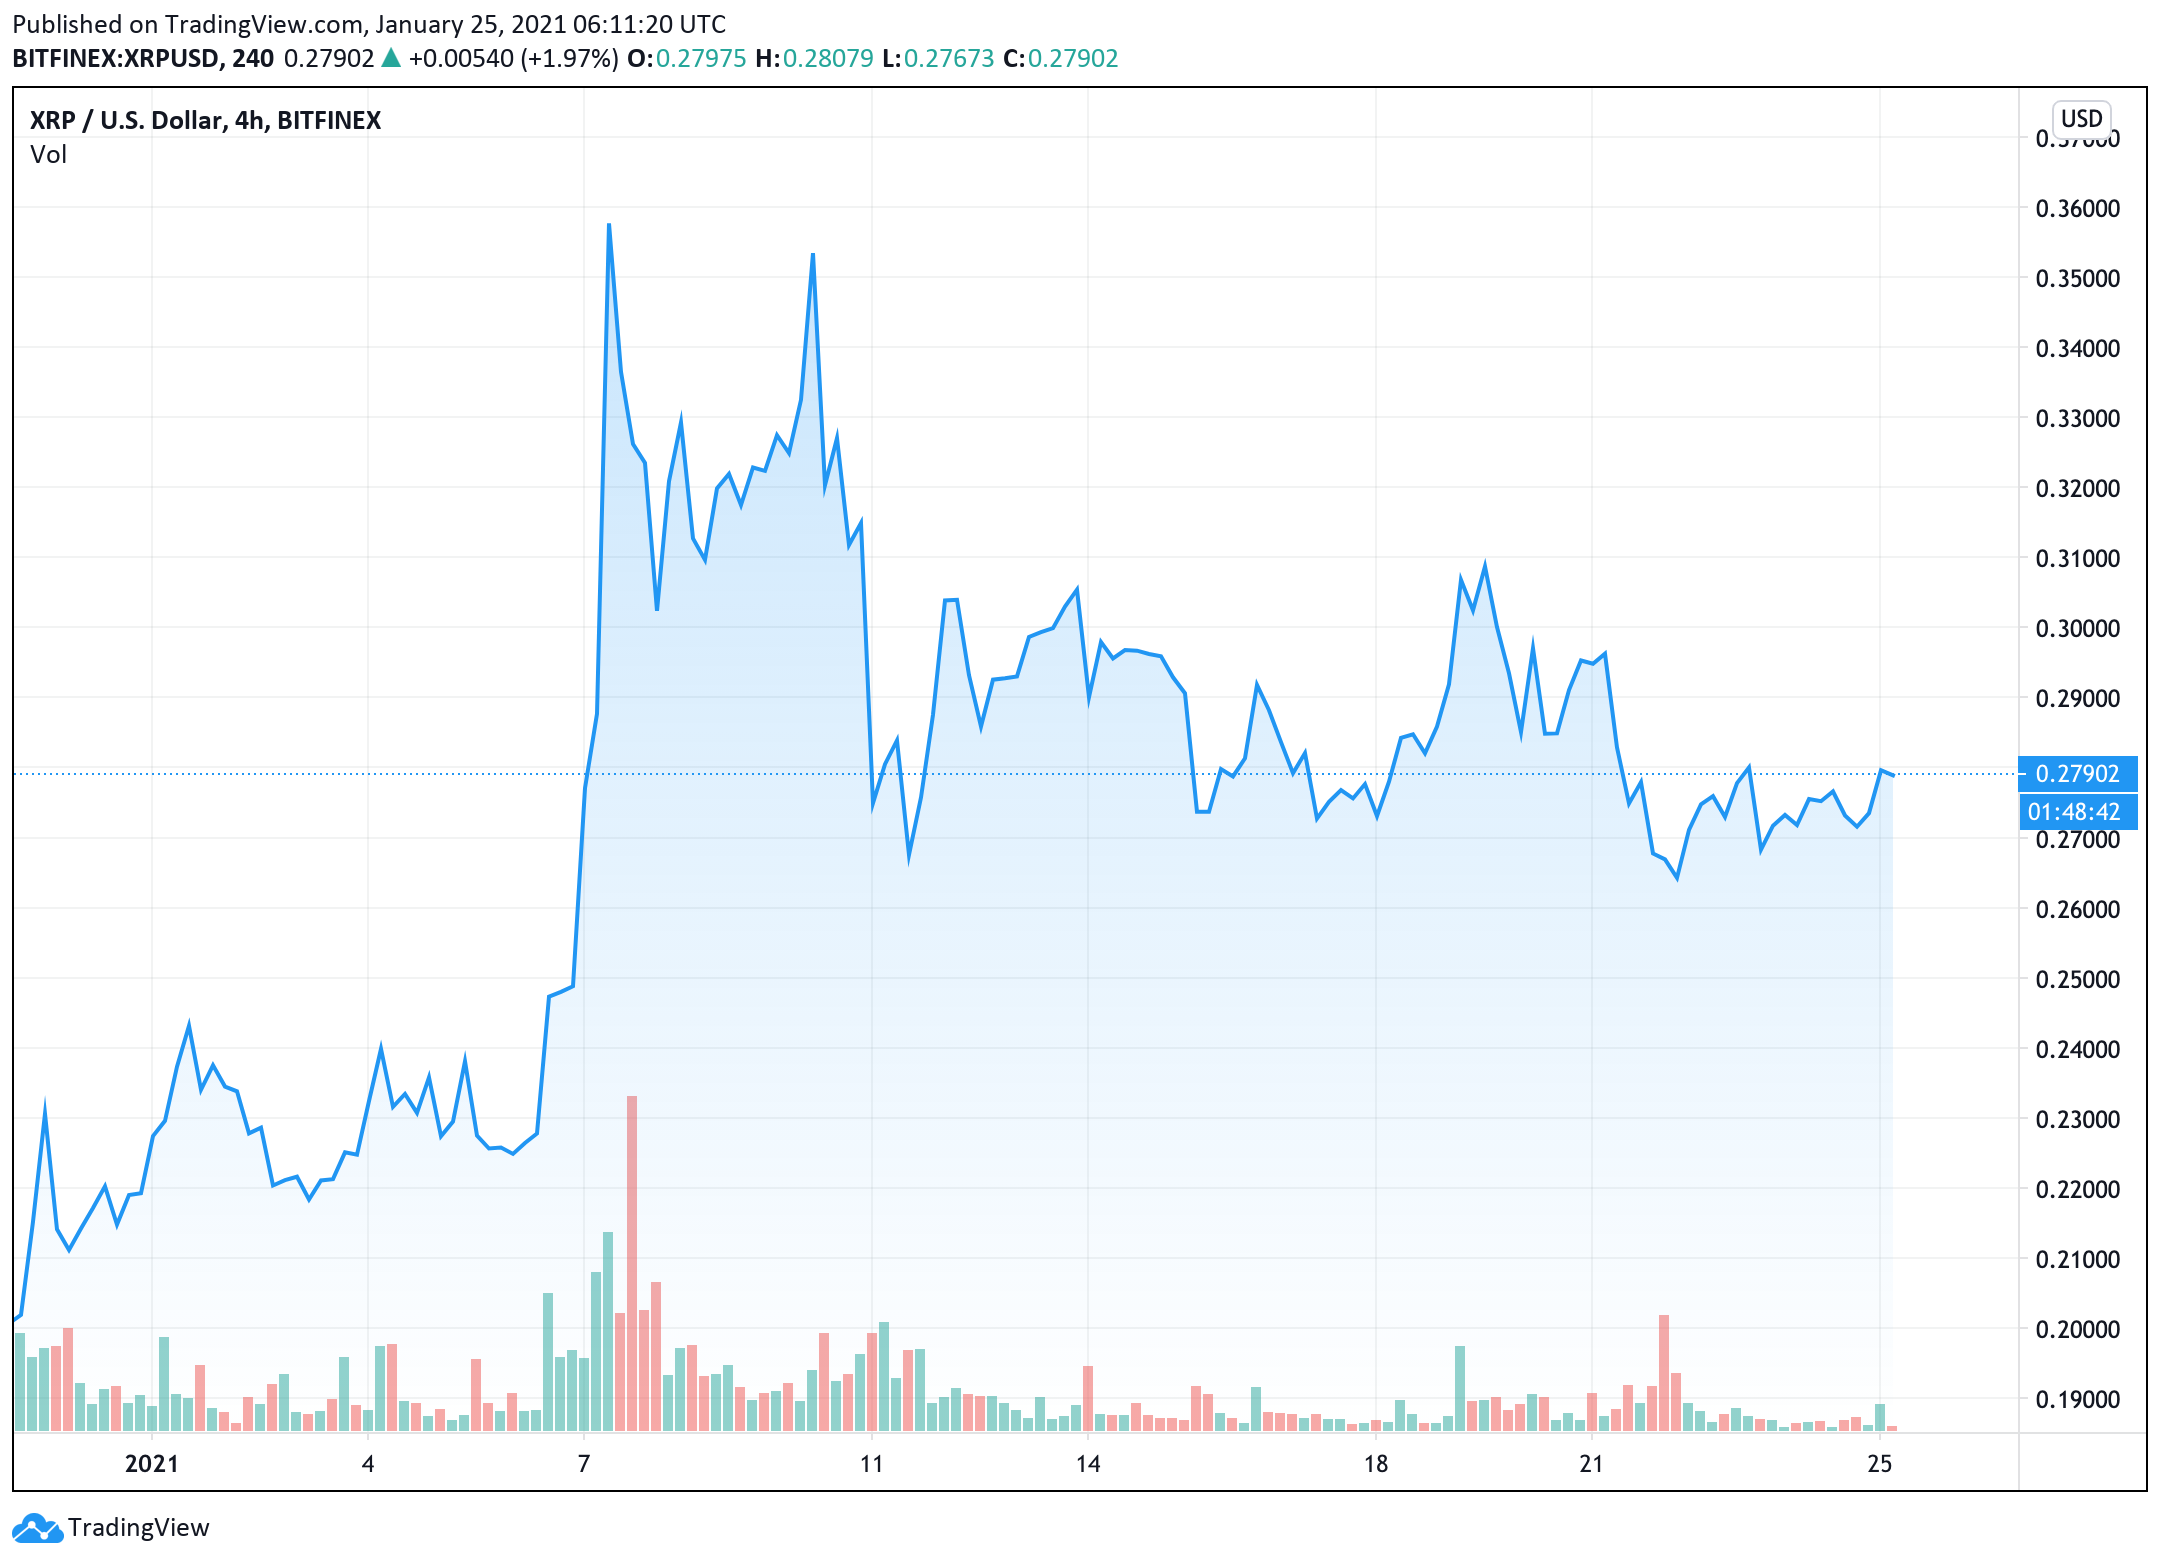 arca-co-founder-and-stock-law-phil-liu-mong-ripple-va-xrp-to-drop-off-the-map-by-the-end-of-nay